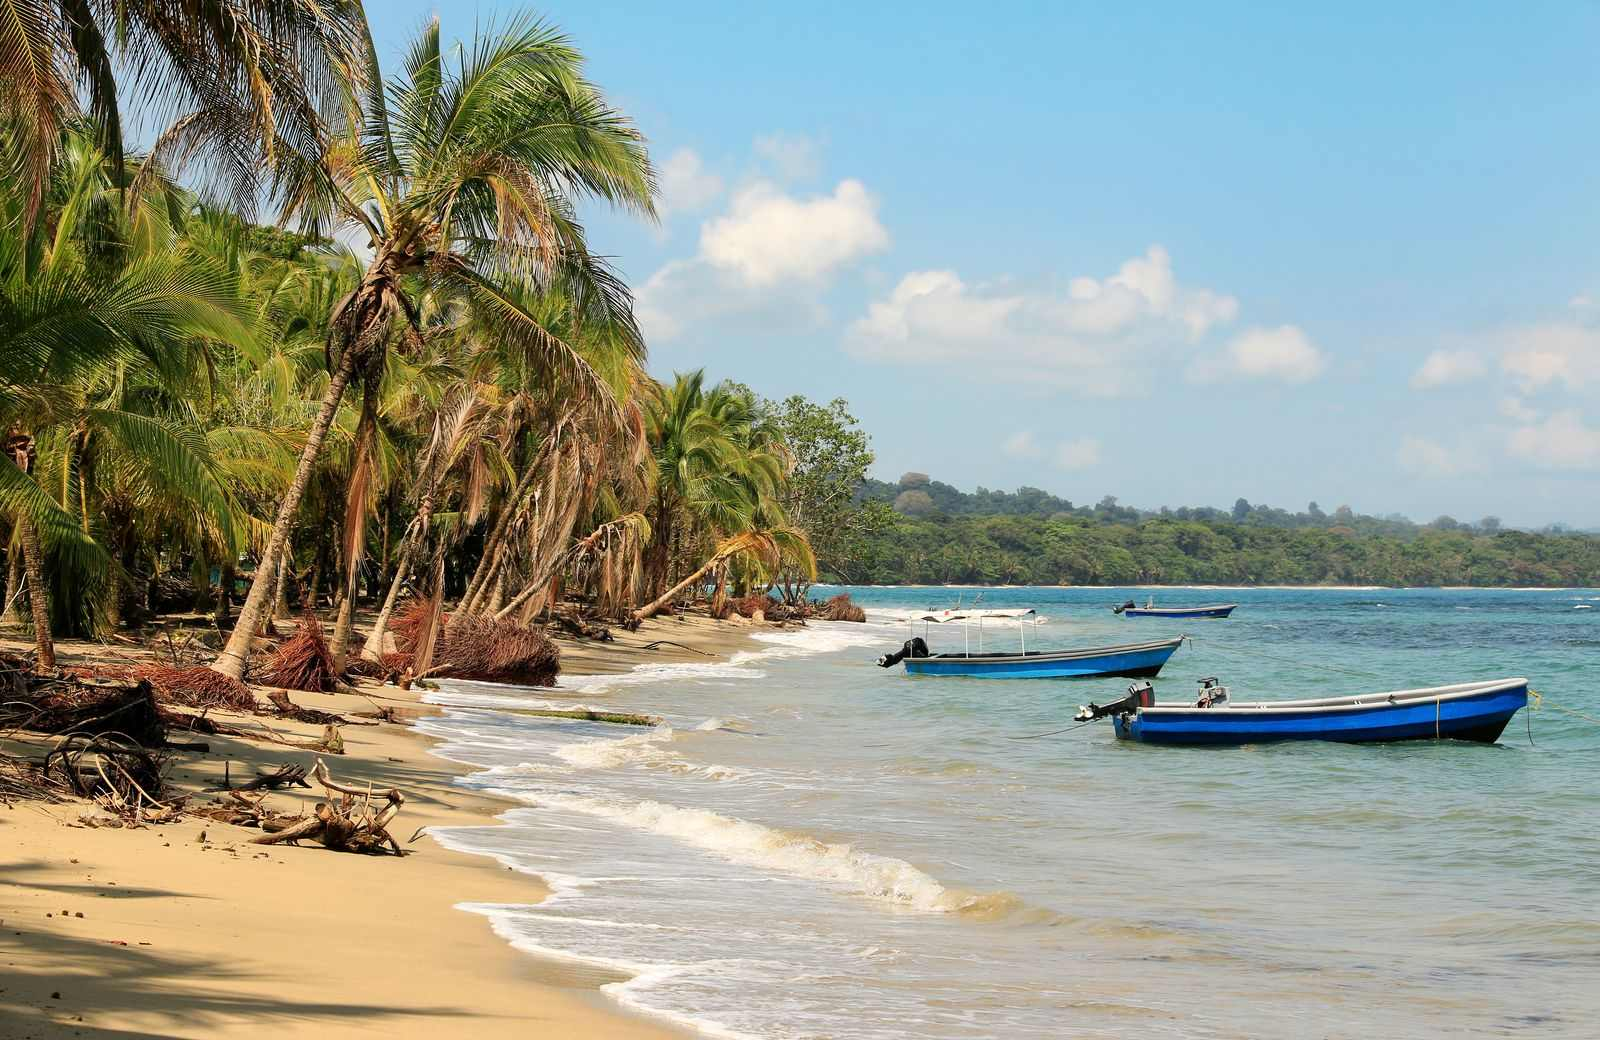 Epic and Adventurous Things To Do In Puerto Limon, Costa Rica